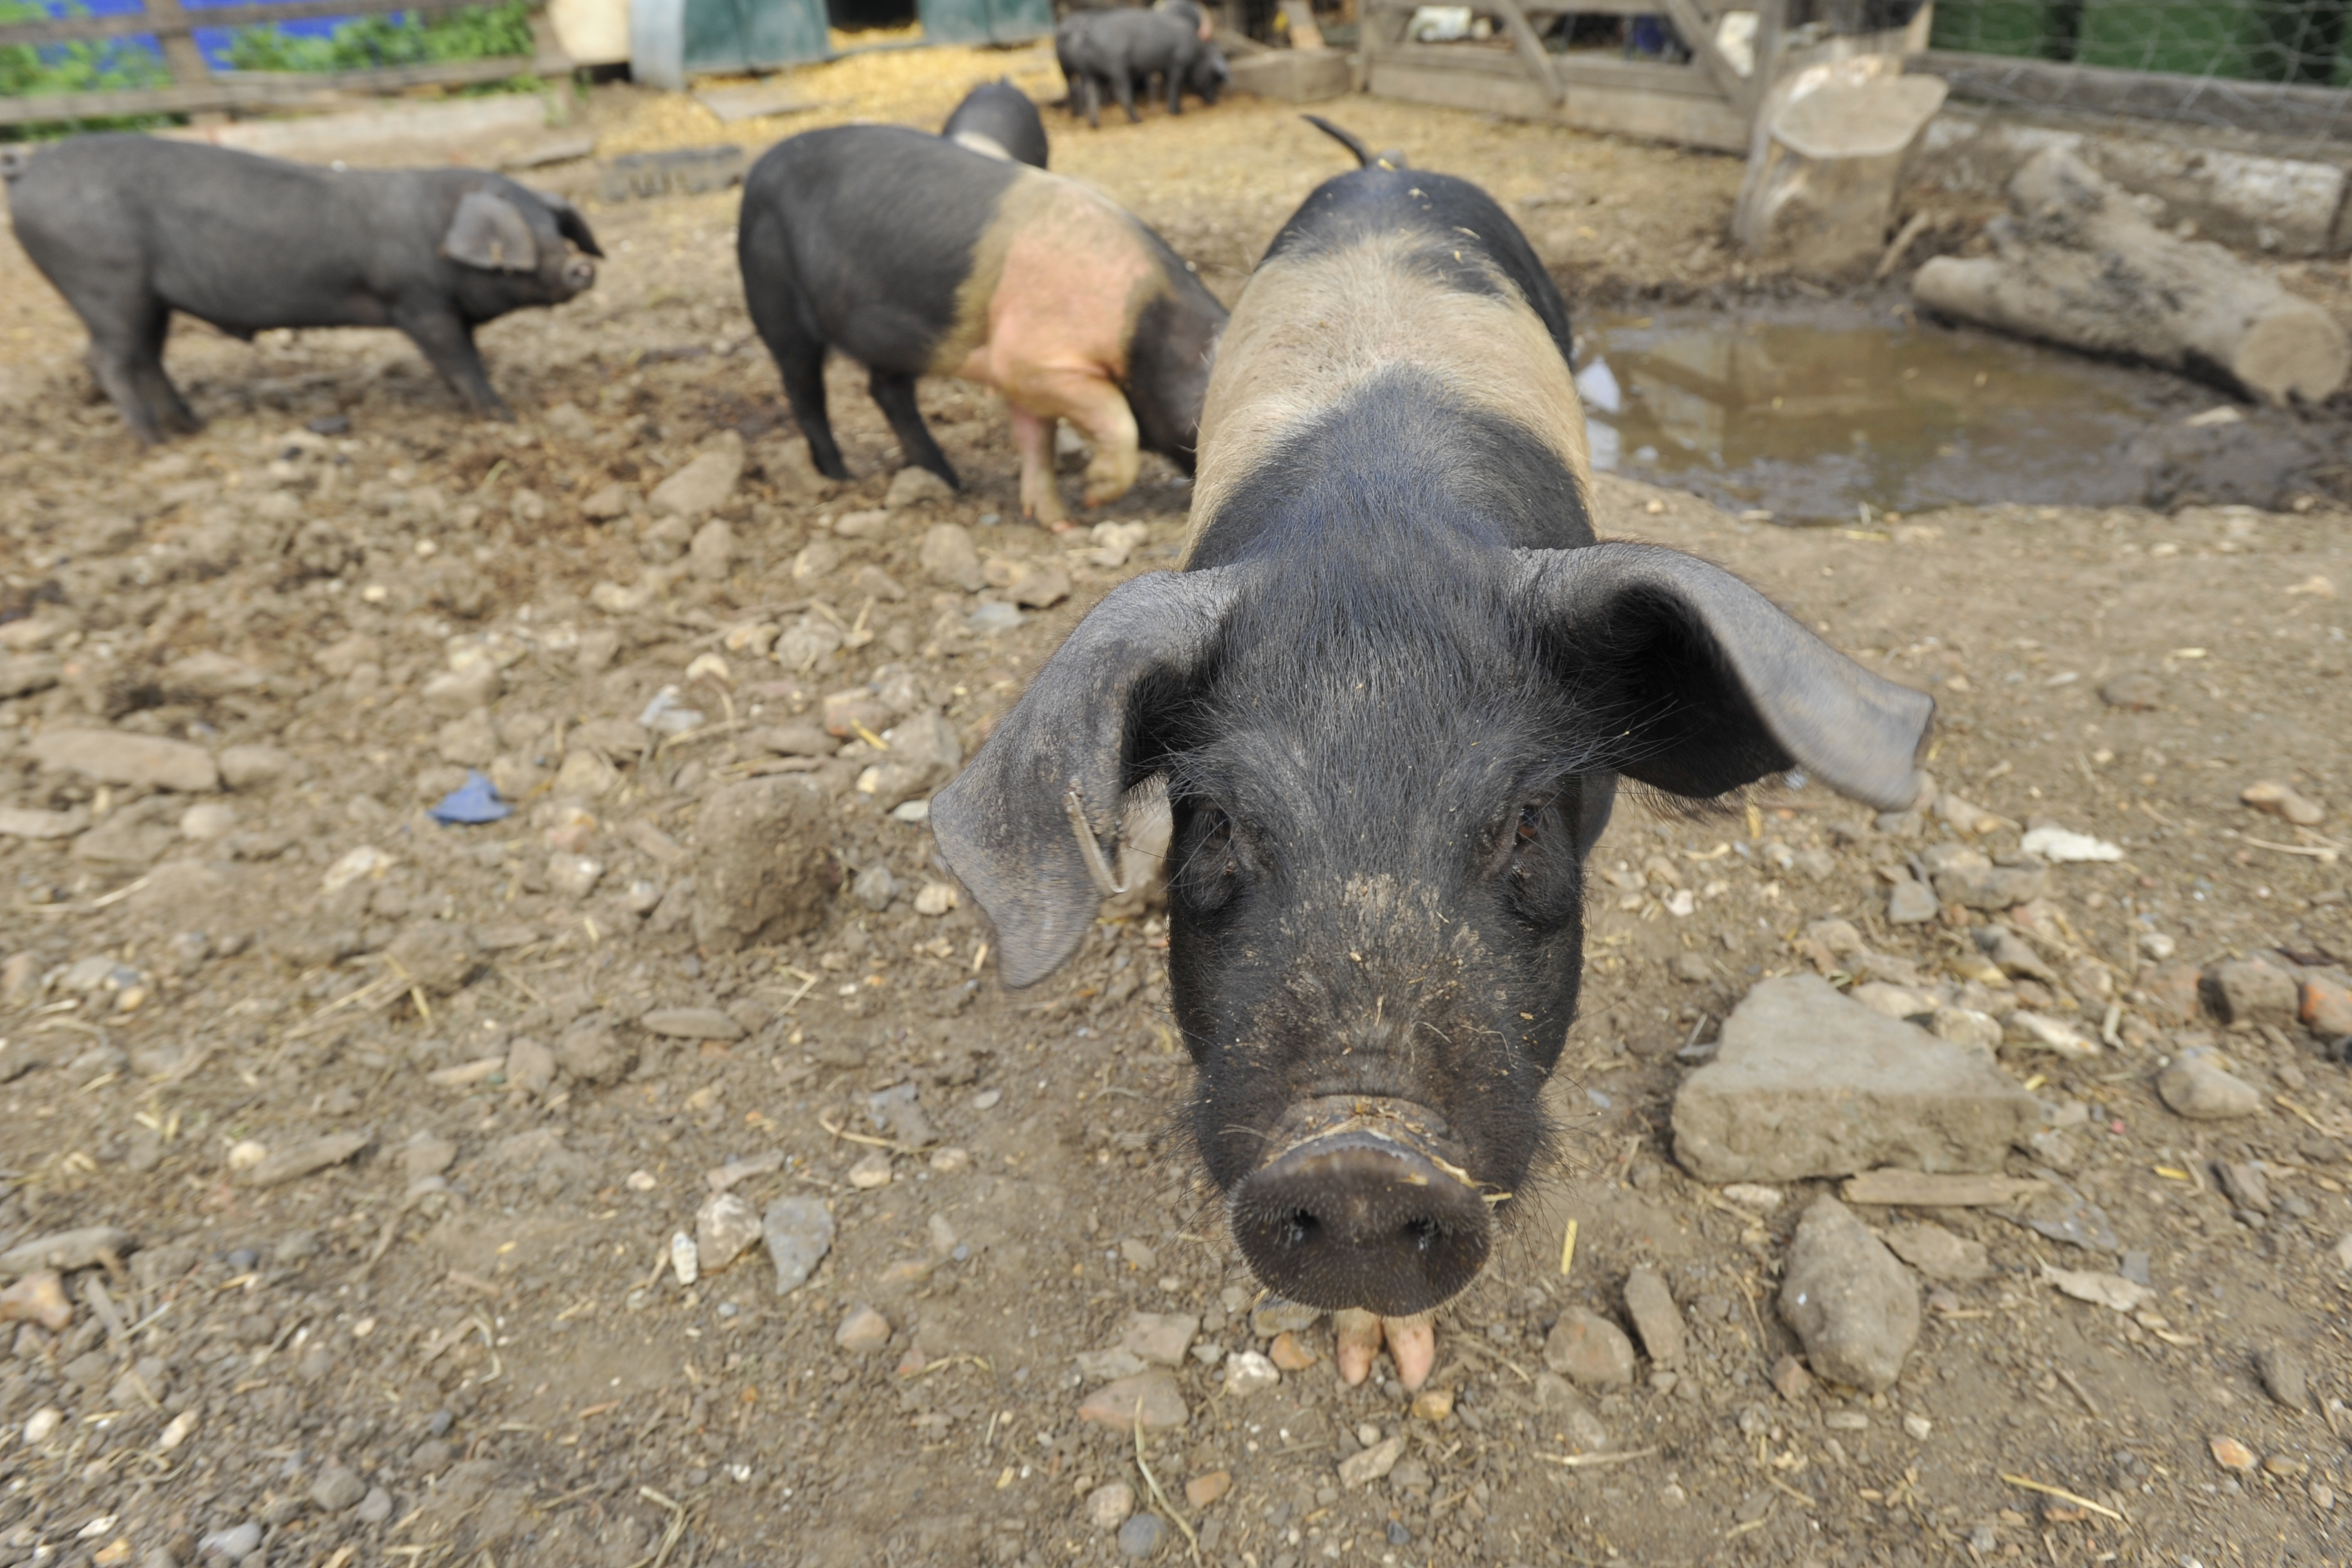 Pigs rooting for food scraps